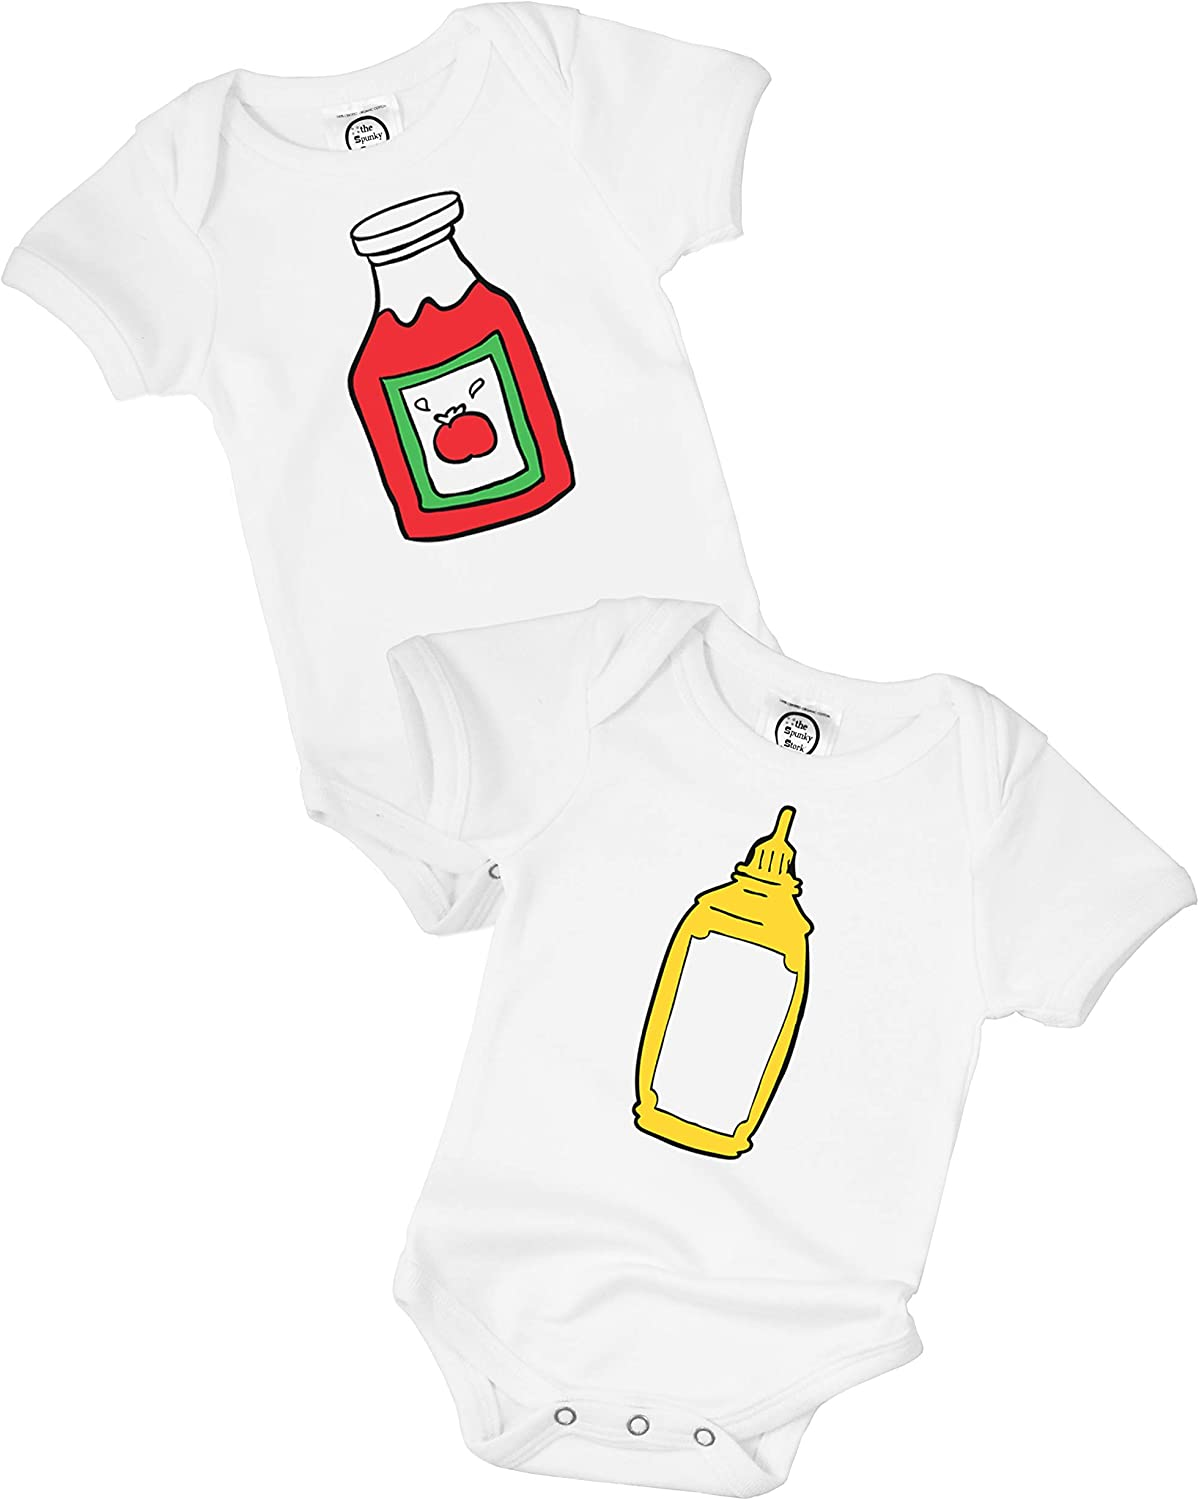 The Spunky Stork Baby Girl /& Boy Funny Newborn Twin Organic Bodysuit Gift Outfit